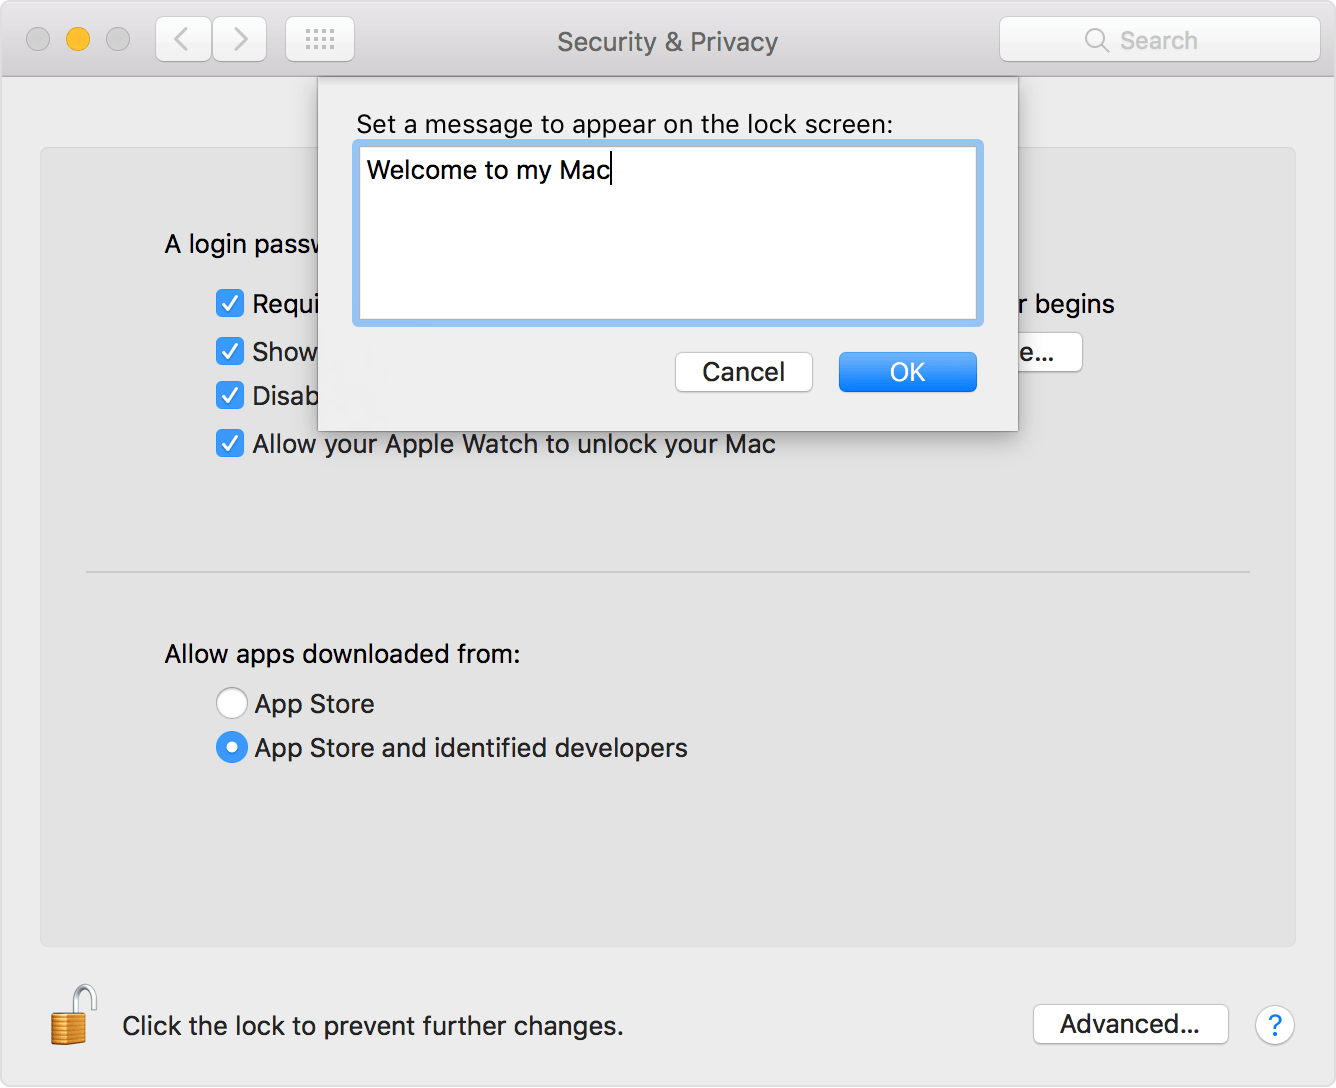 How to set a lock message on the login window of your Mac